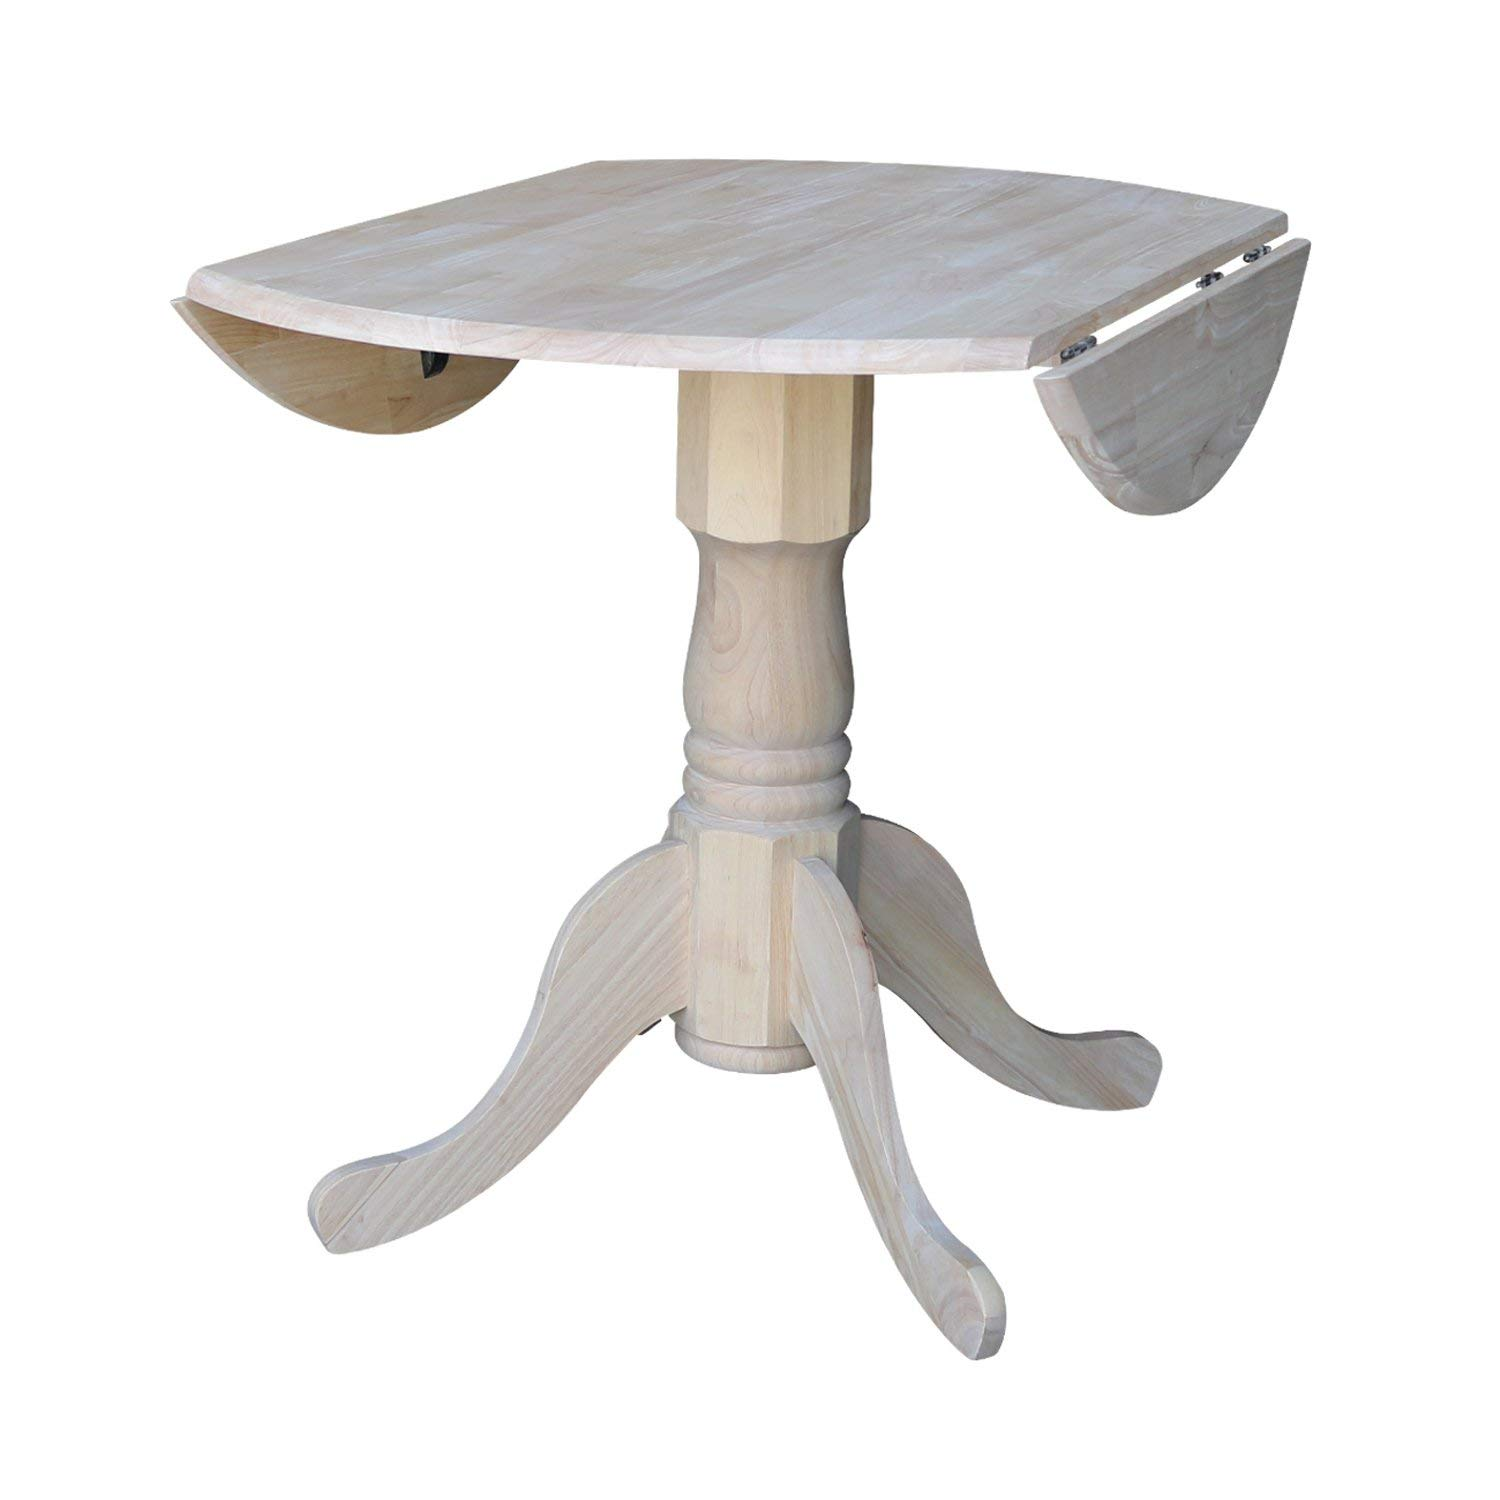 ACCENTHOME Round Dining Table Drop Leaf Unfinished Solid Parawood Space Saving Rustic Country Kitchen Furniture